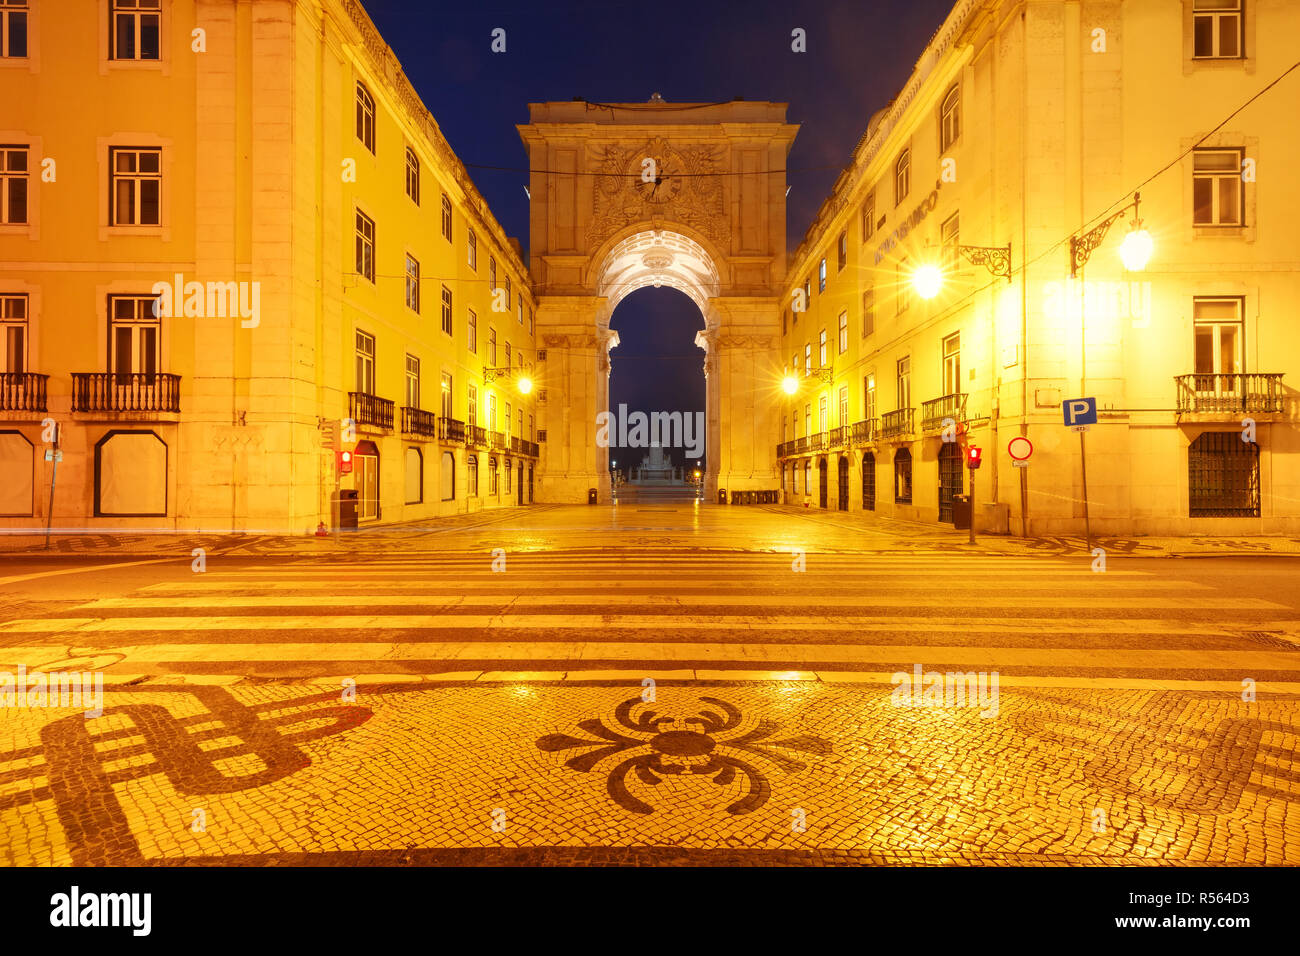 Commerce Square at night in Lisbon, Portugal - Stock Image